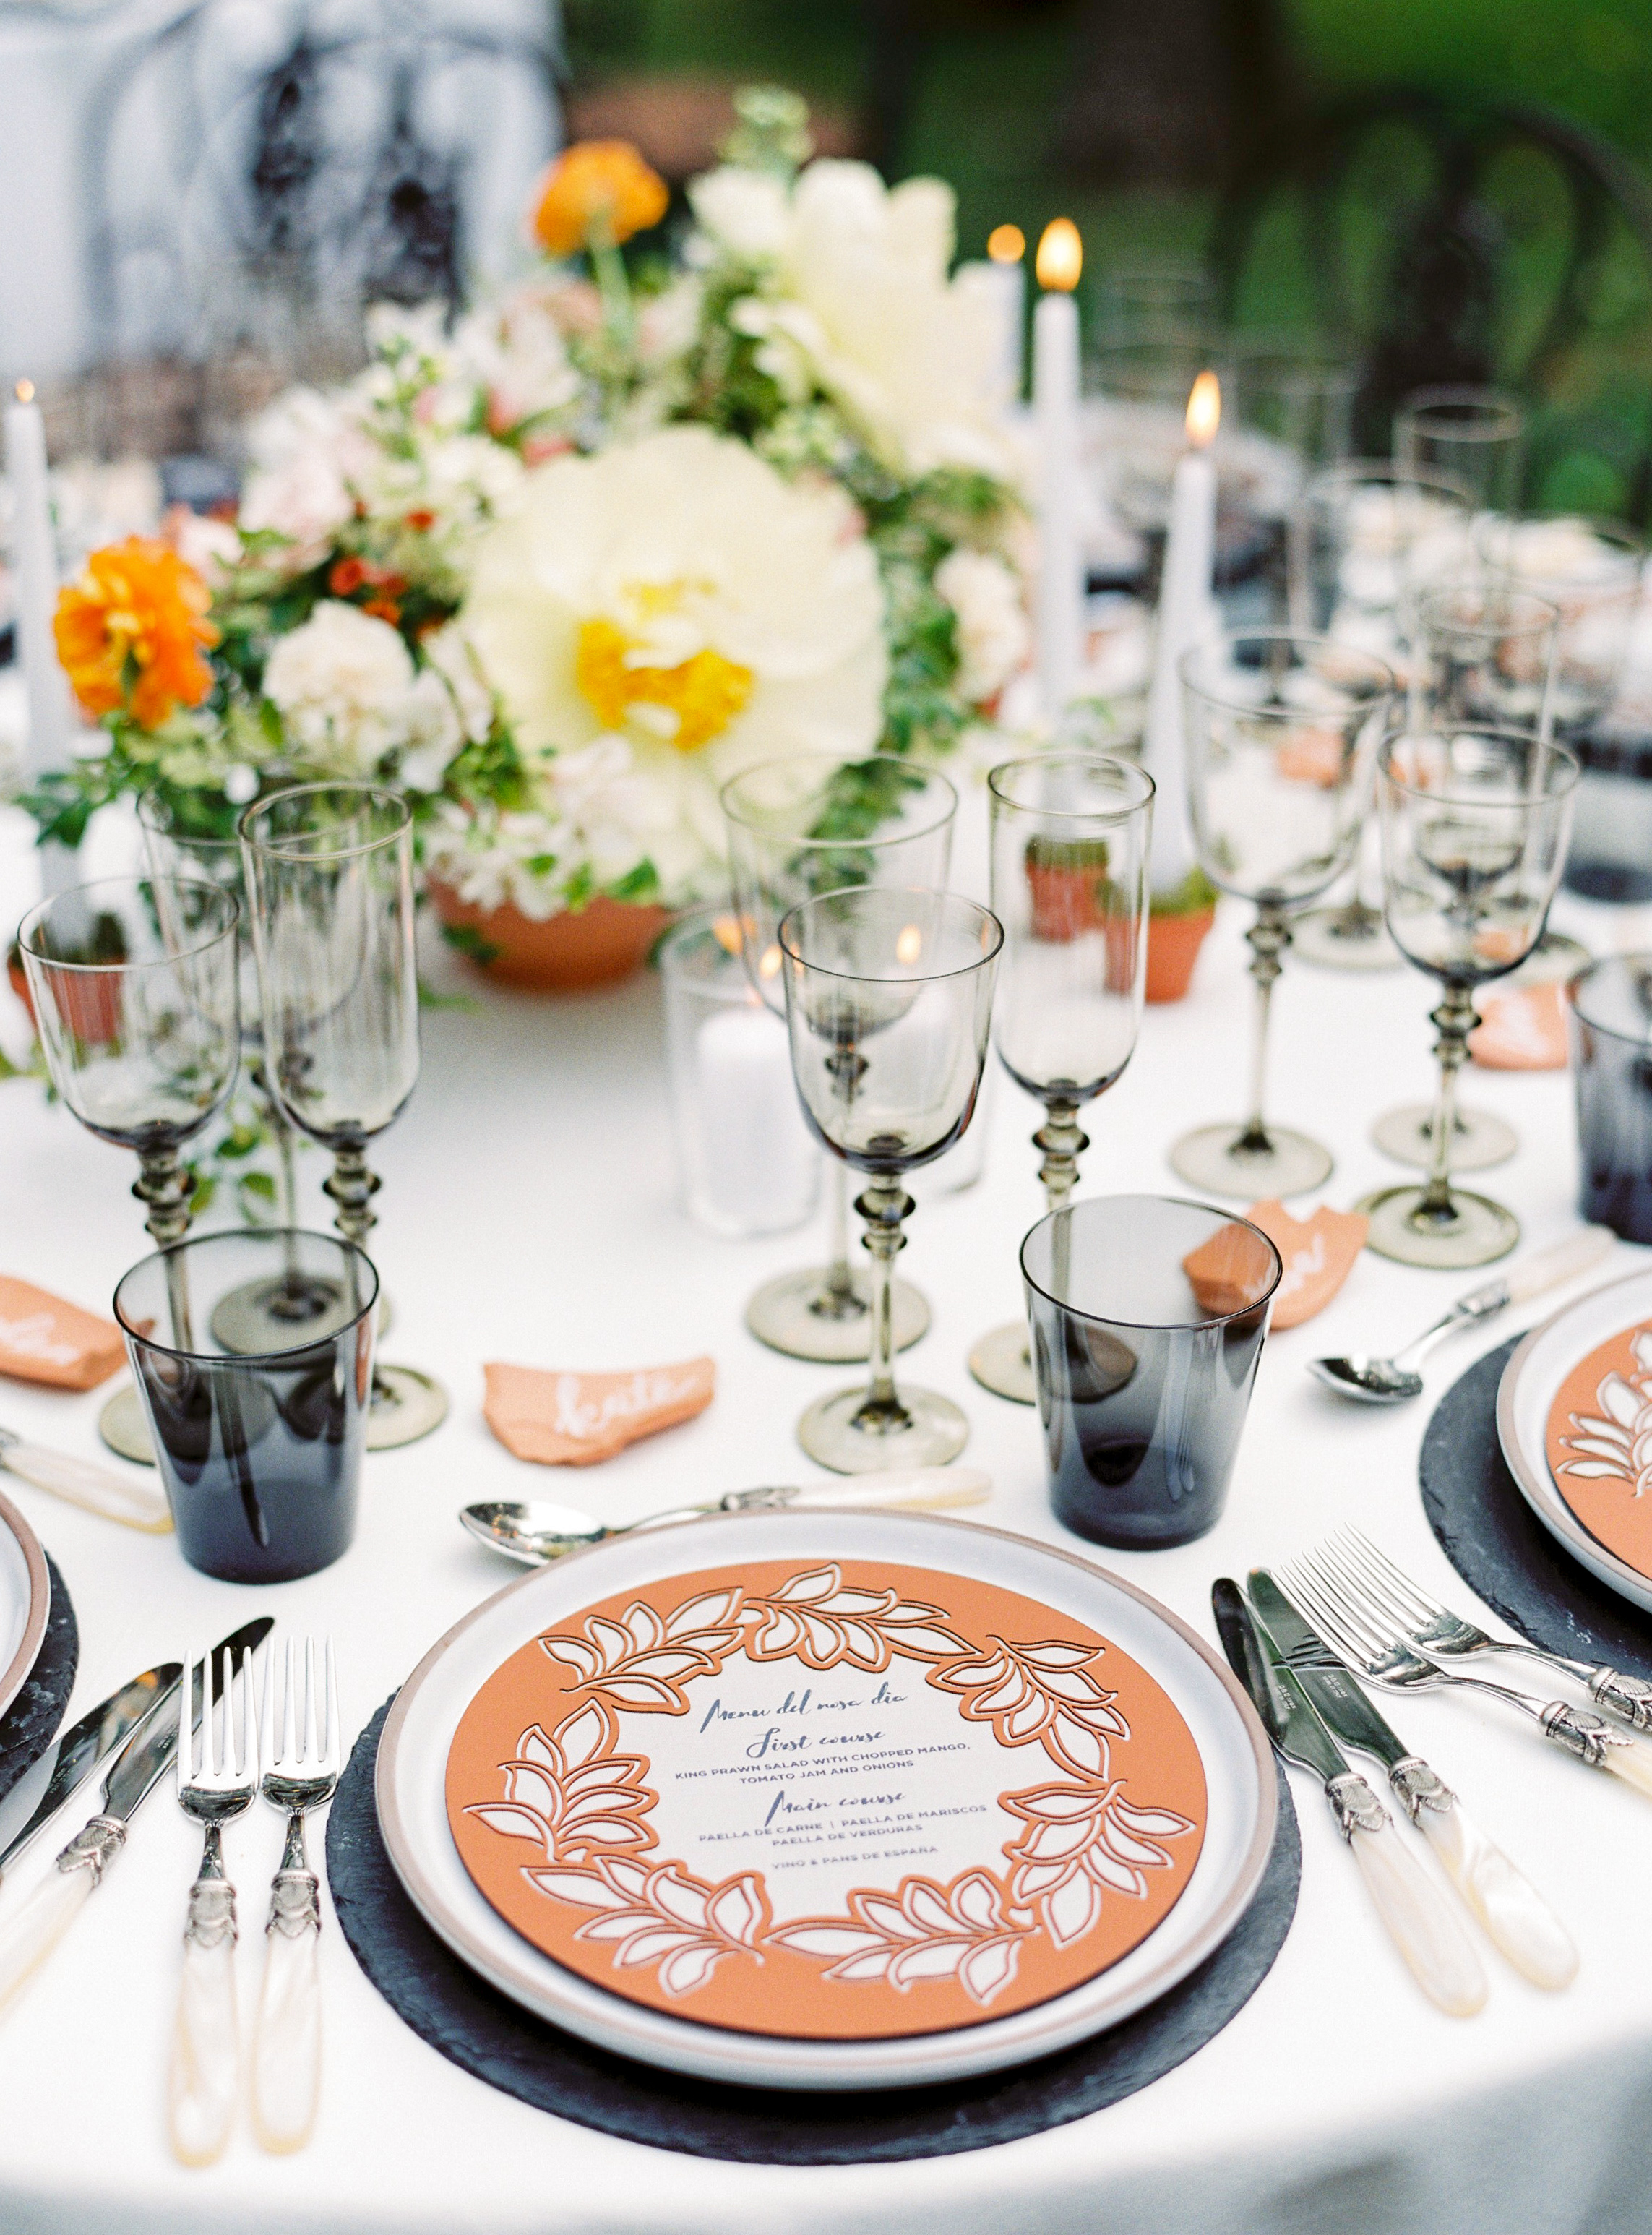 slate boards included with table setting floral centerpiece